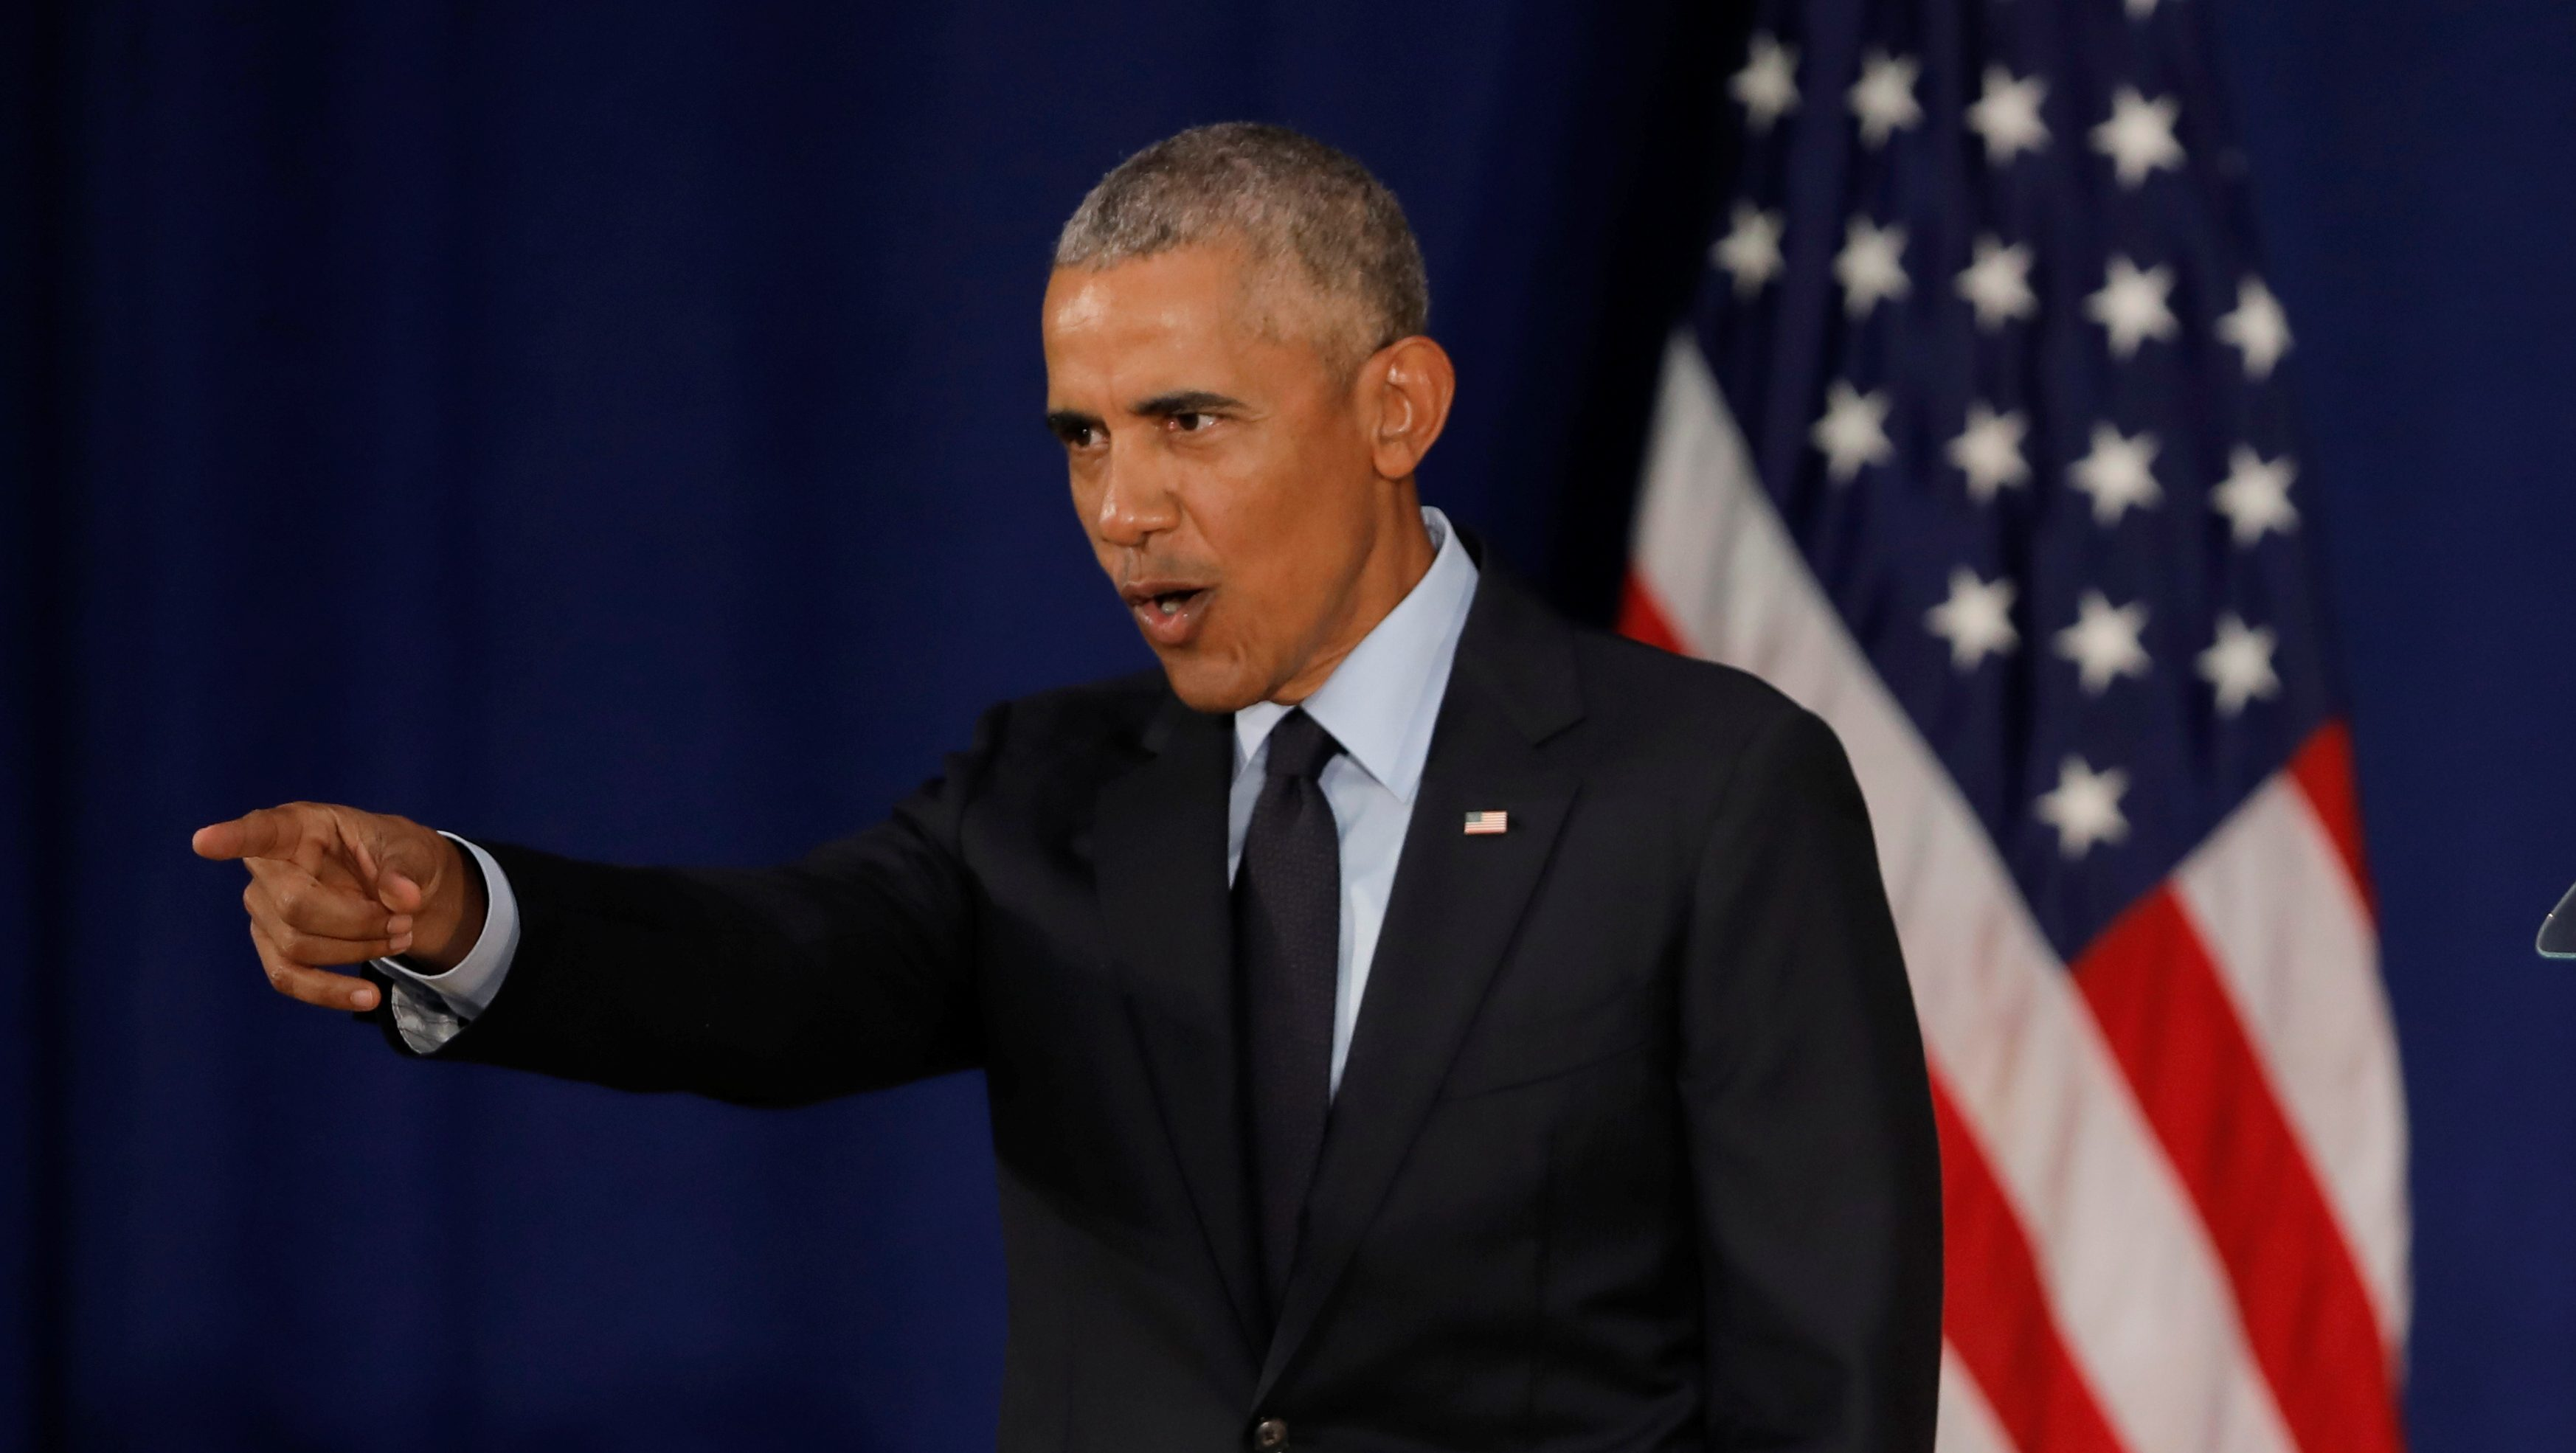 Former U.S. President Barack Obama leaves after speaking at the University of Illinois Urbana-Champaign.